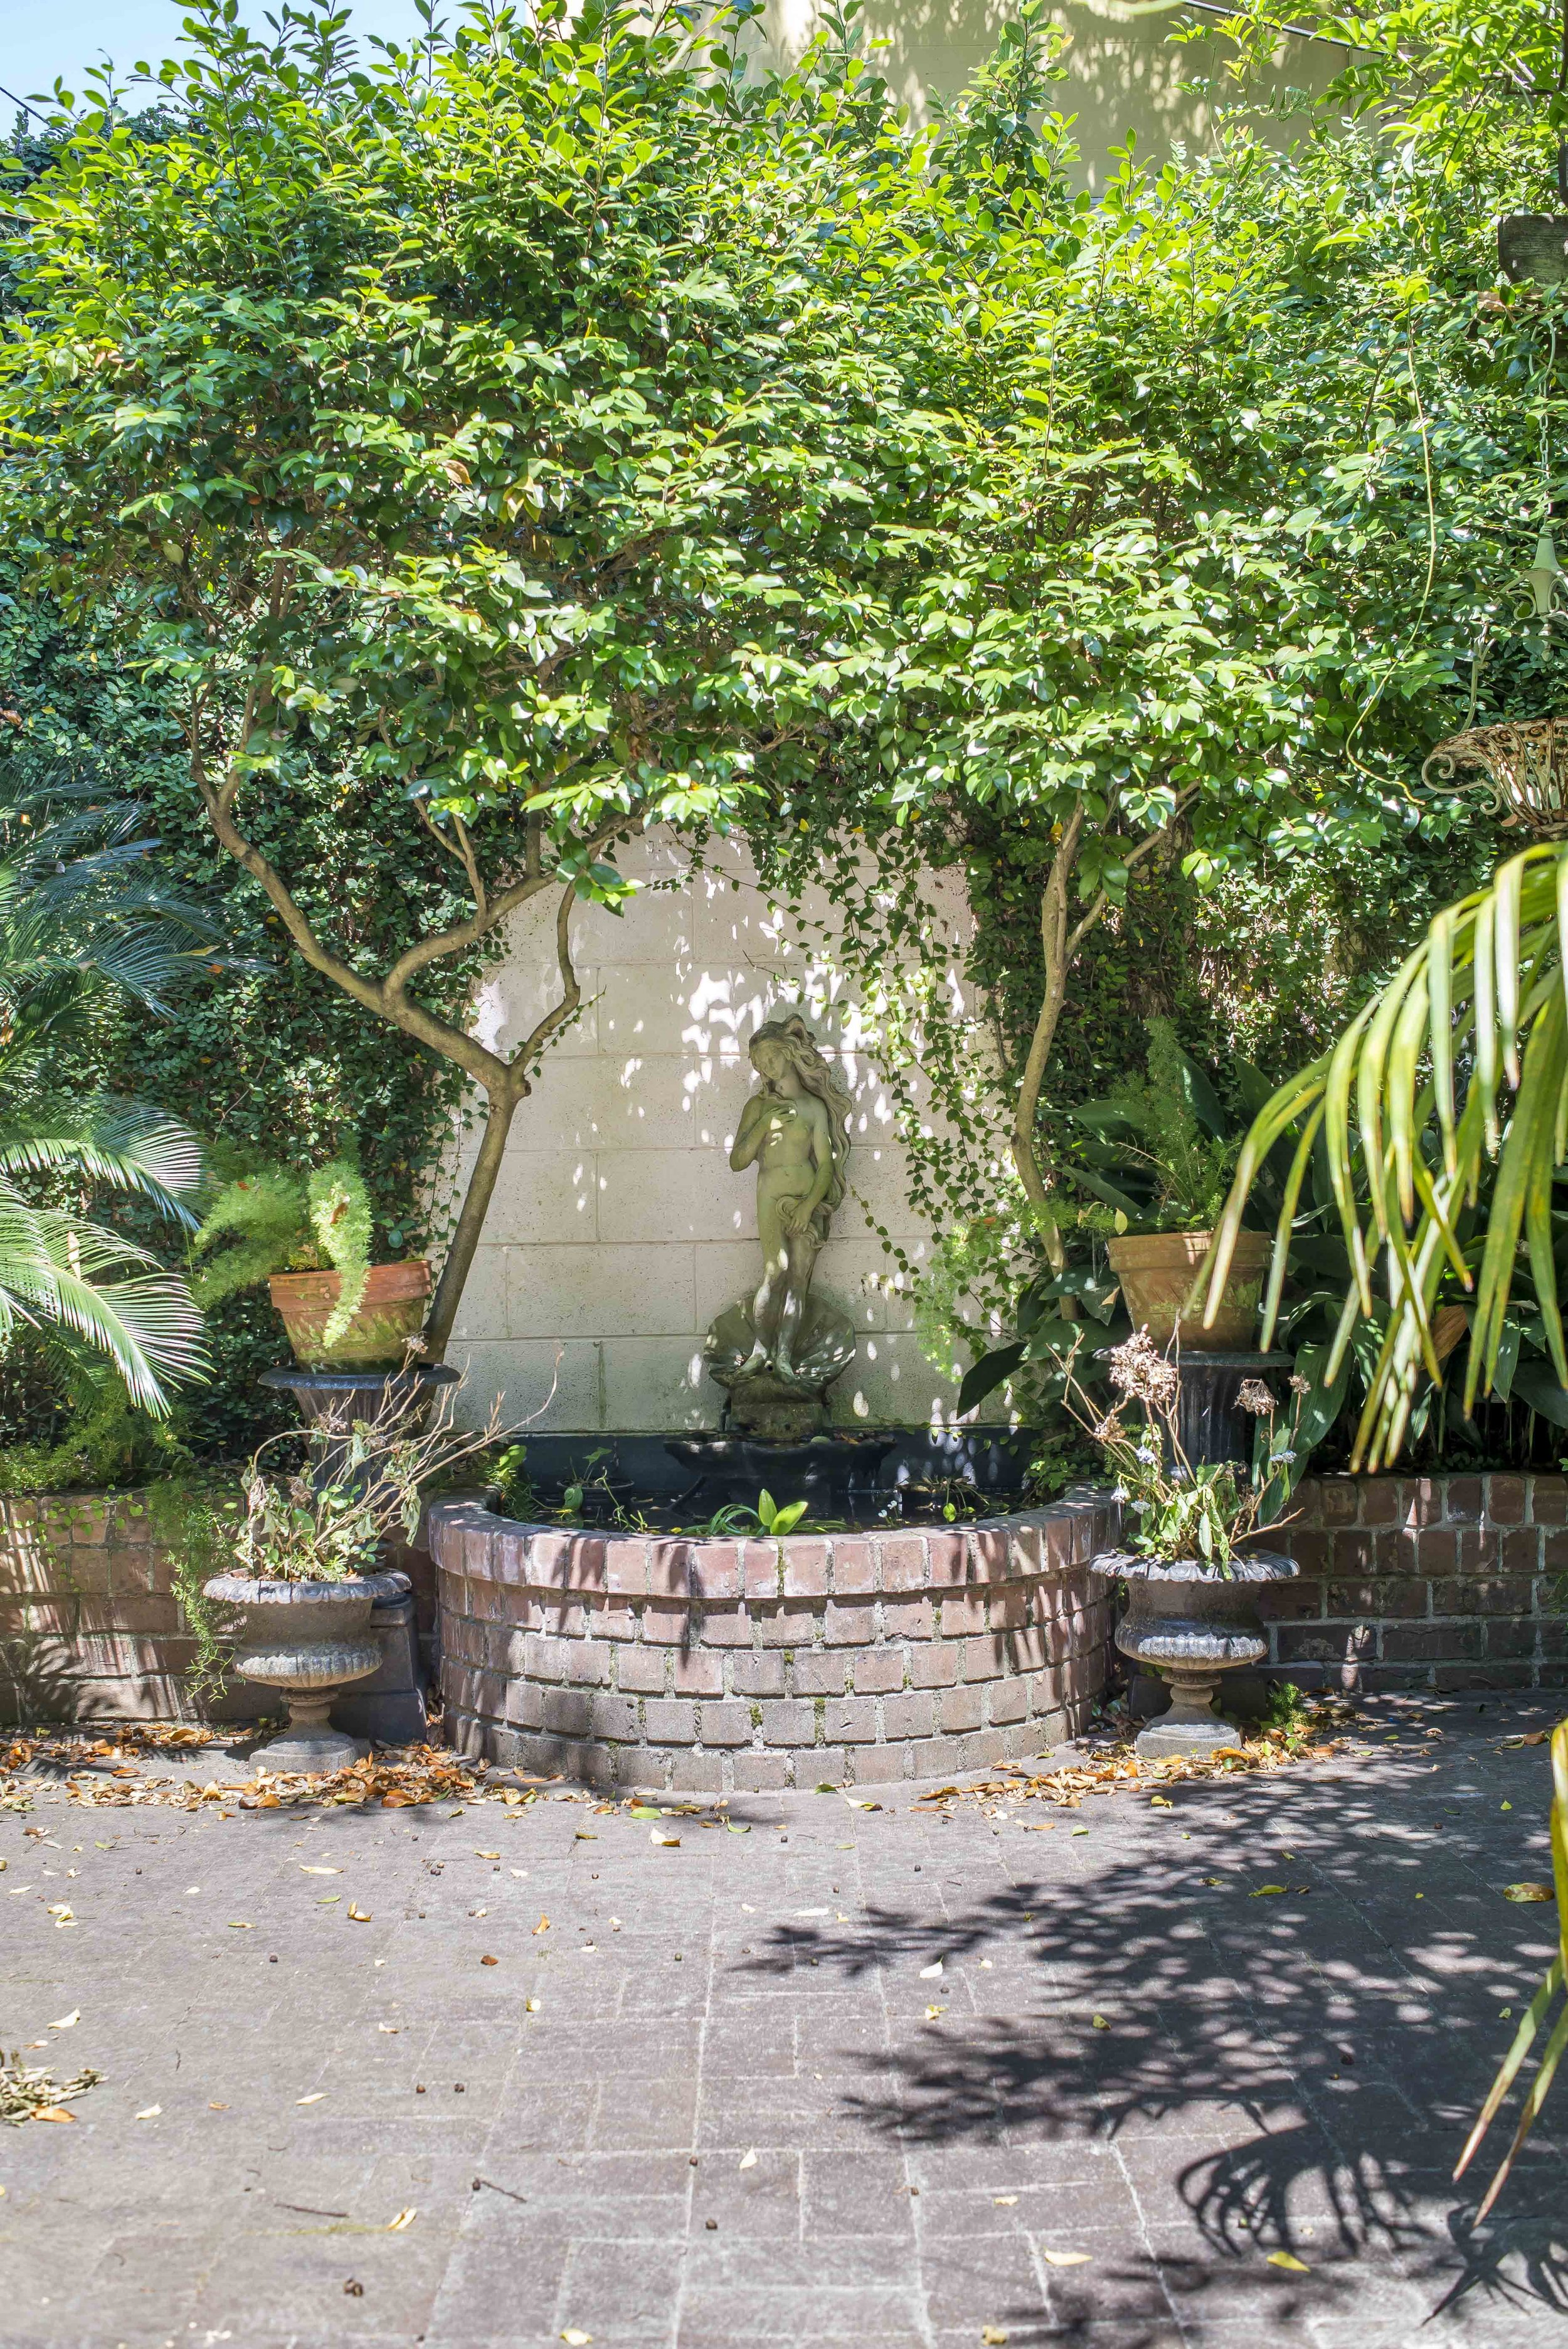 The courtyard garden is one of our favorite features of the house, complete with fountain and wisteria-covered pergola, it's a gardener's dream - and Rhett Jagger and I can't wait to get out there to clear out the old and bring in the fresh flowers.